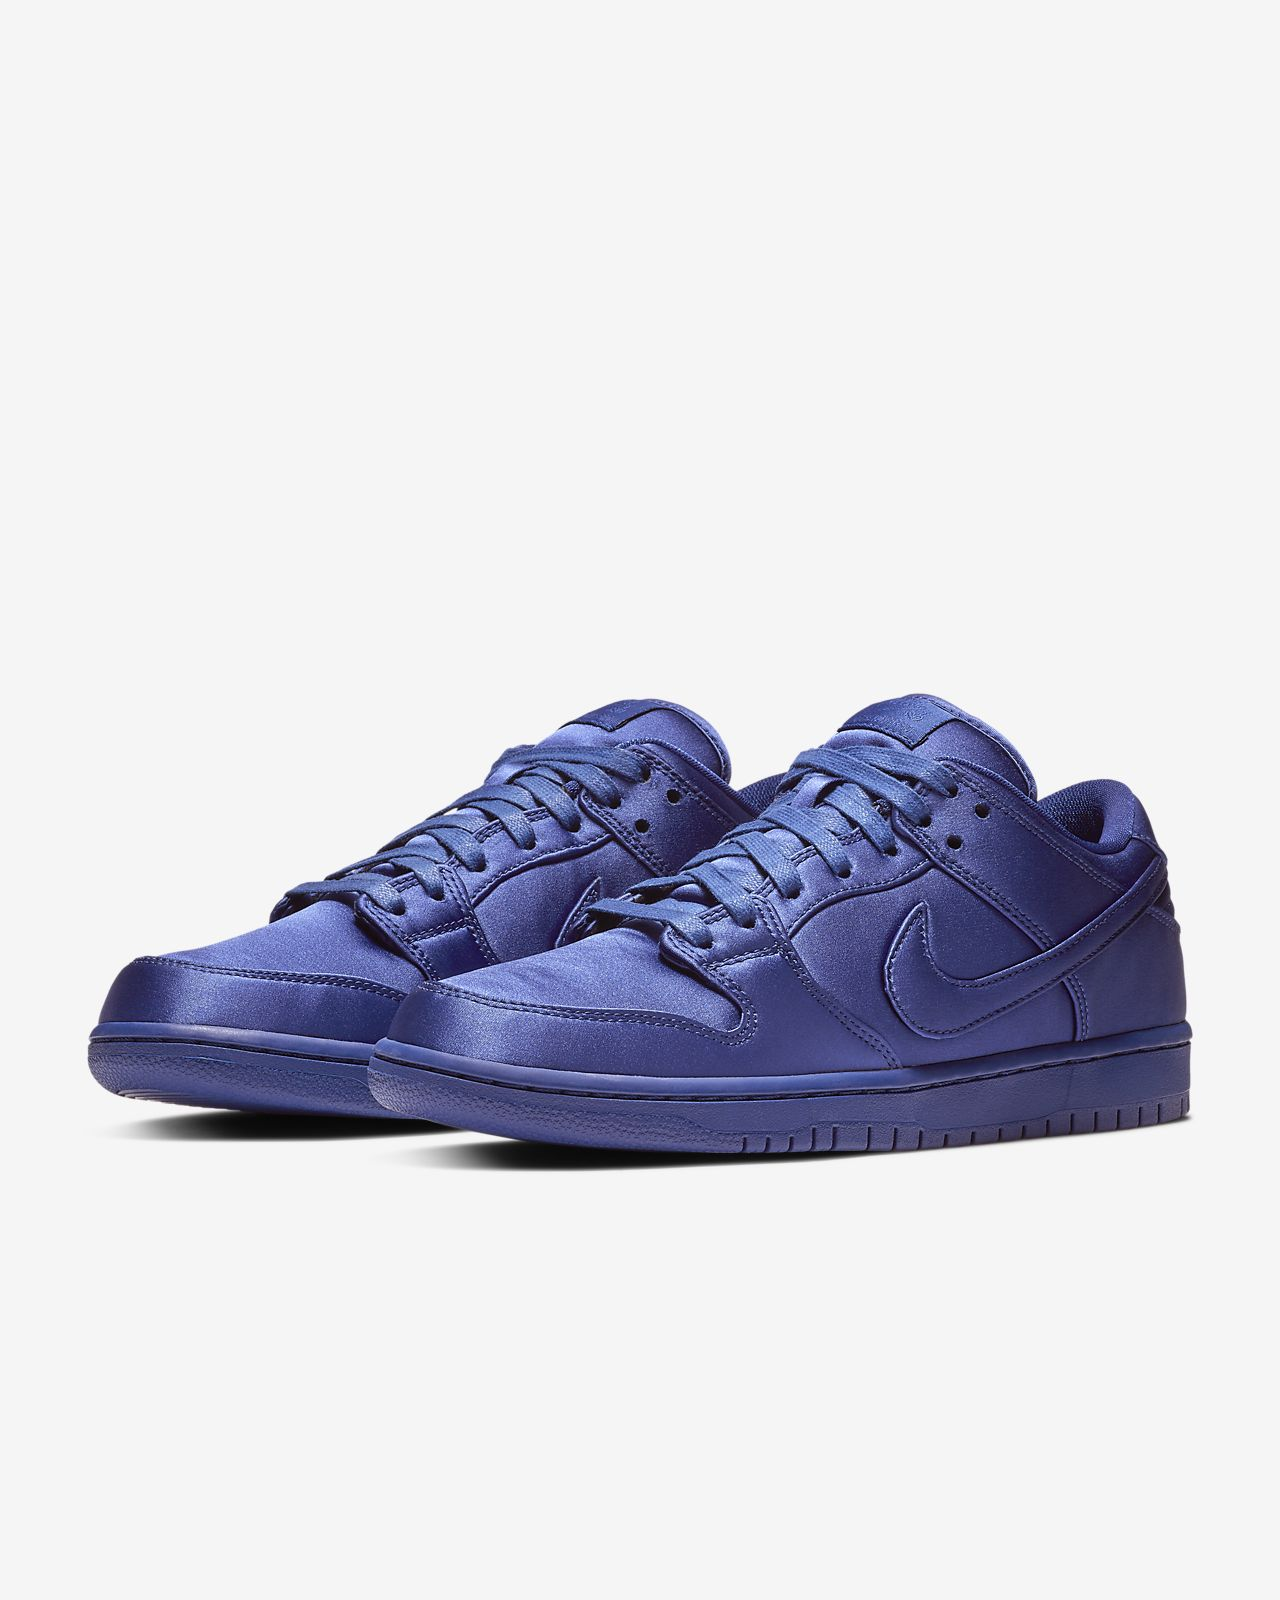 low priced 4f8c1 f13f6 Nike SB Dunk Low TRD NBA Skate Shoe. Nike.com AU